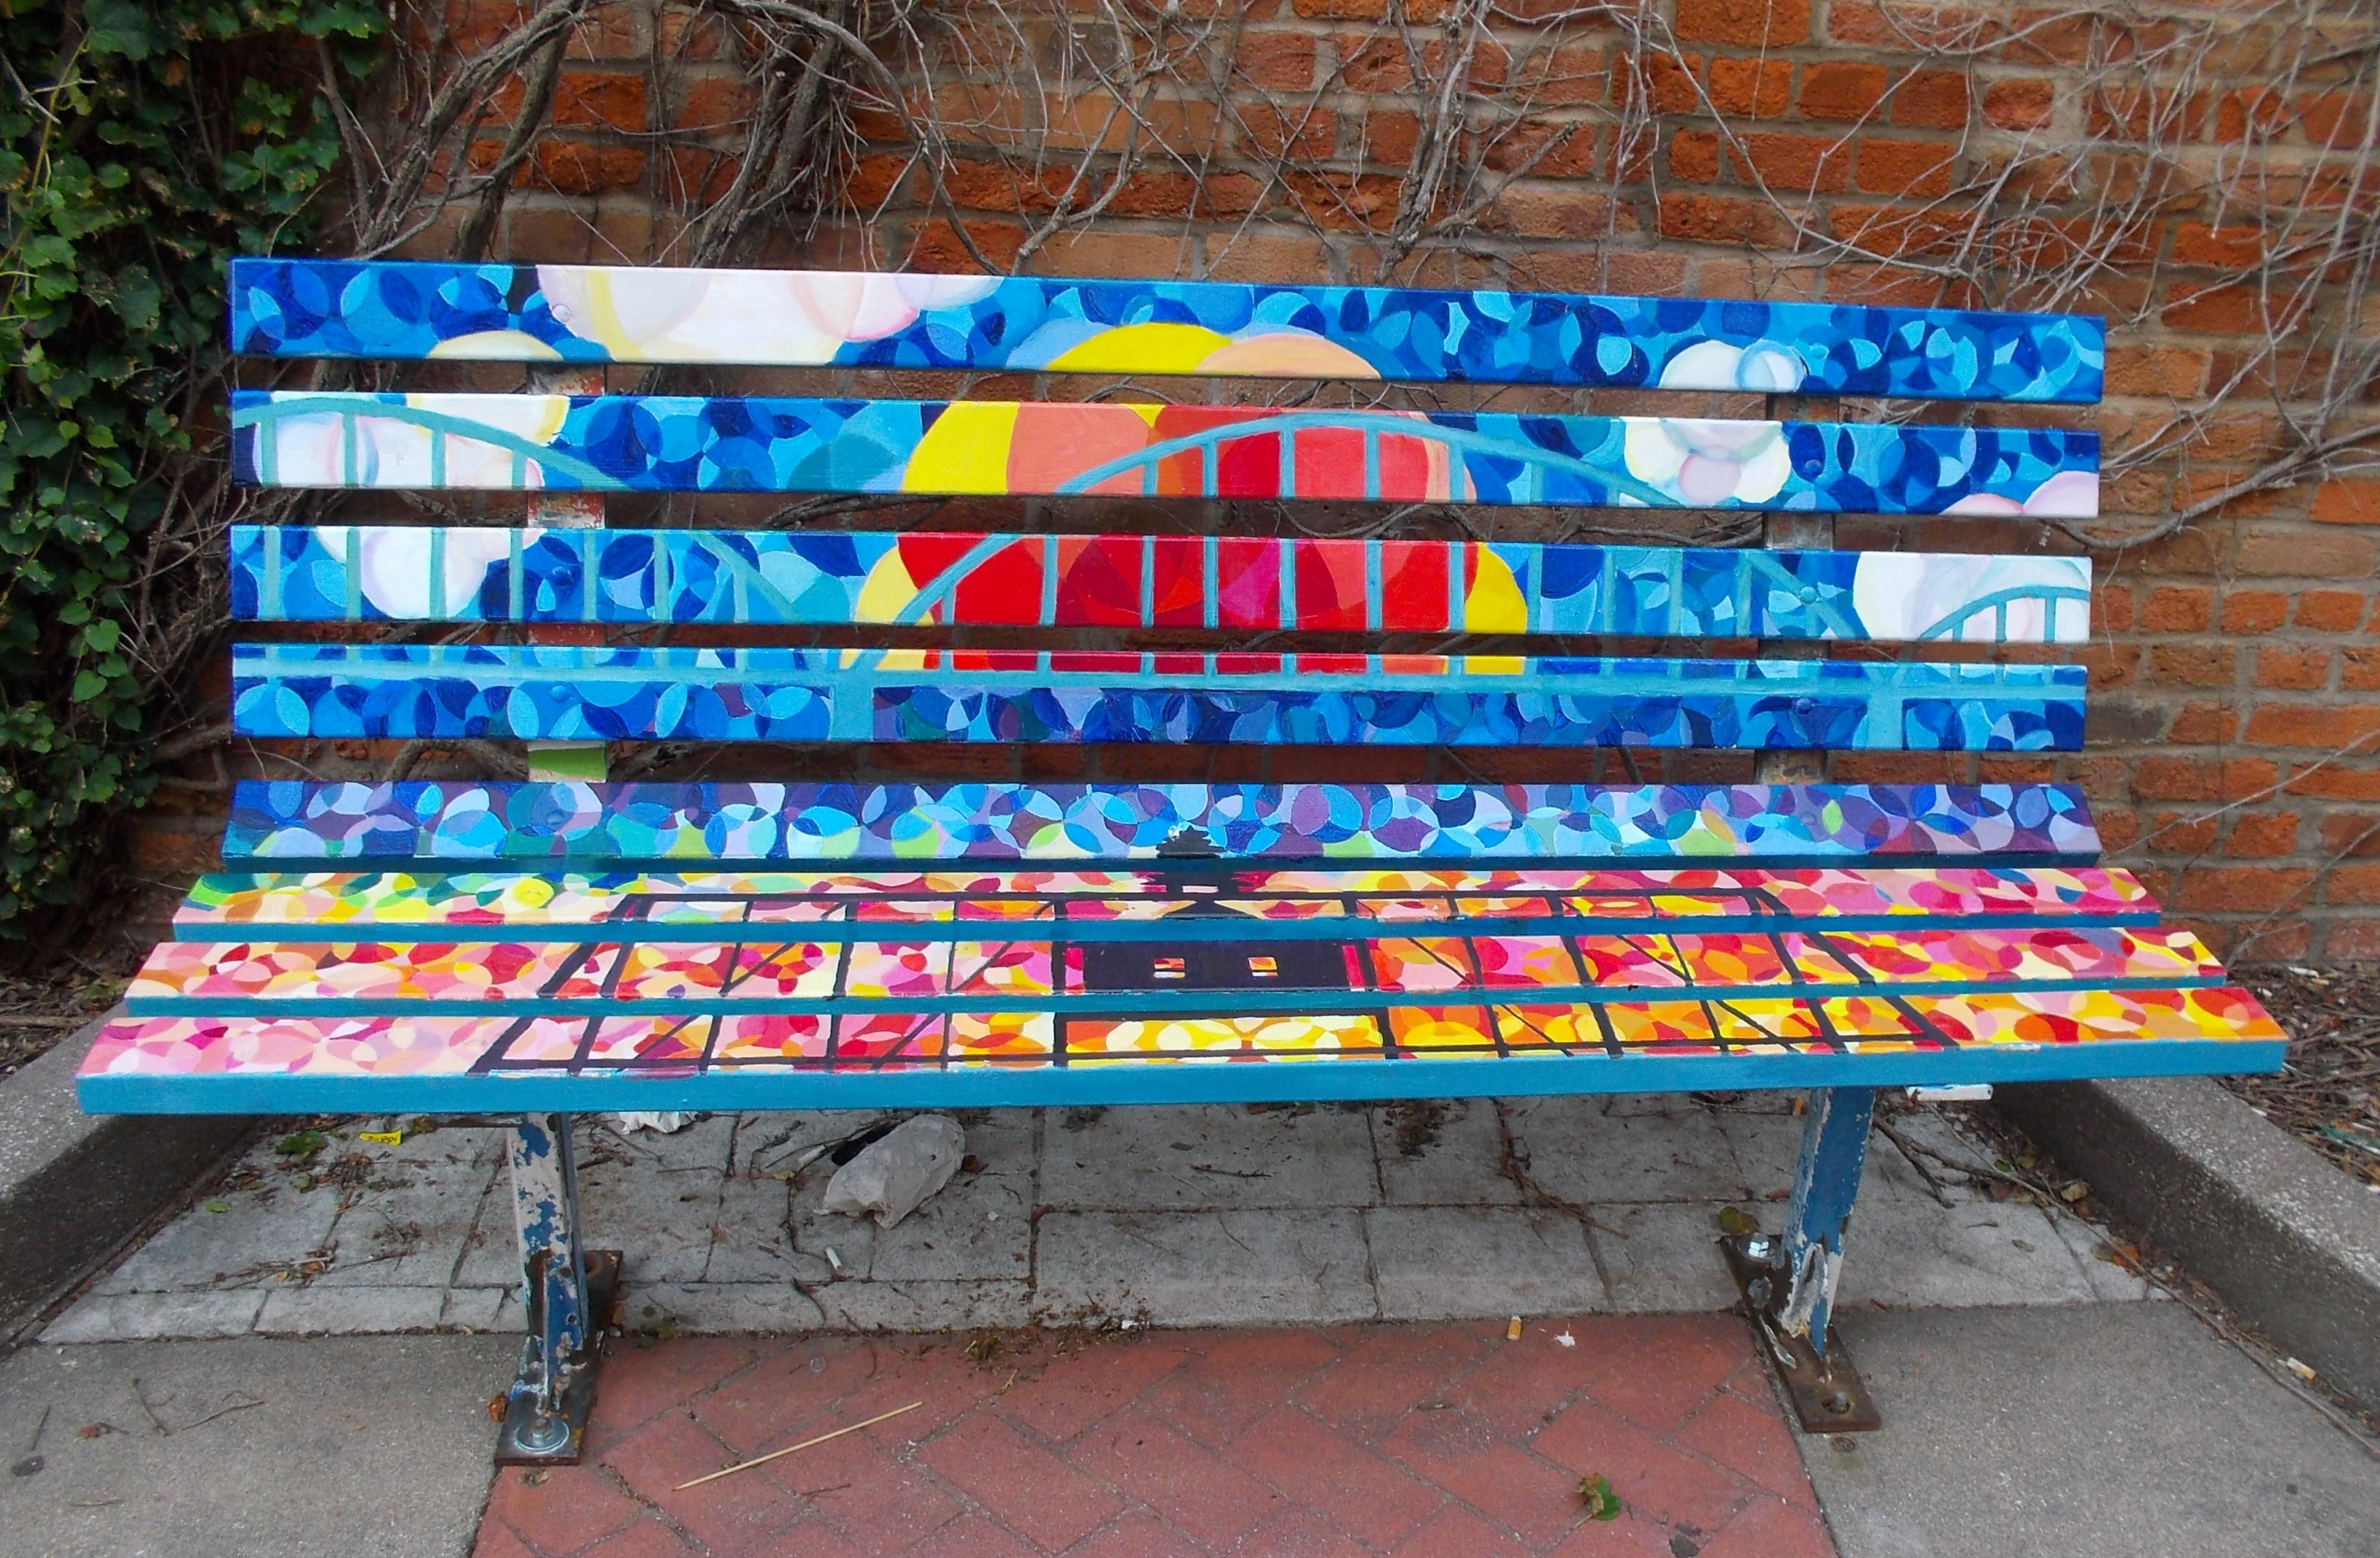 Bench Stained Glass Bridges_MetroAr